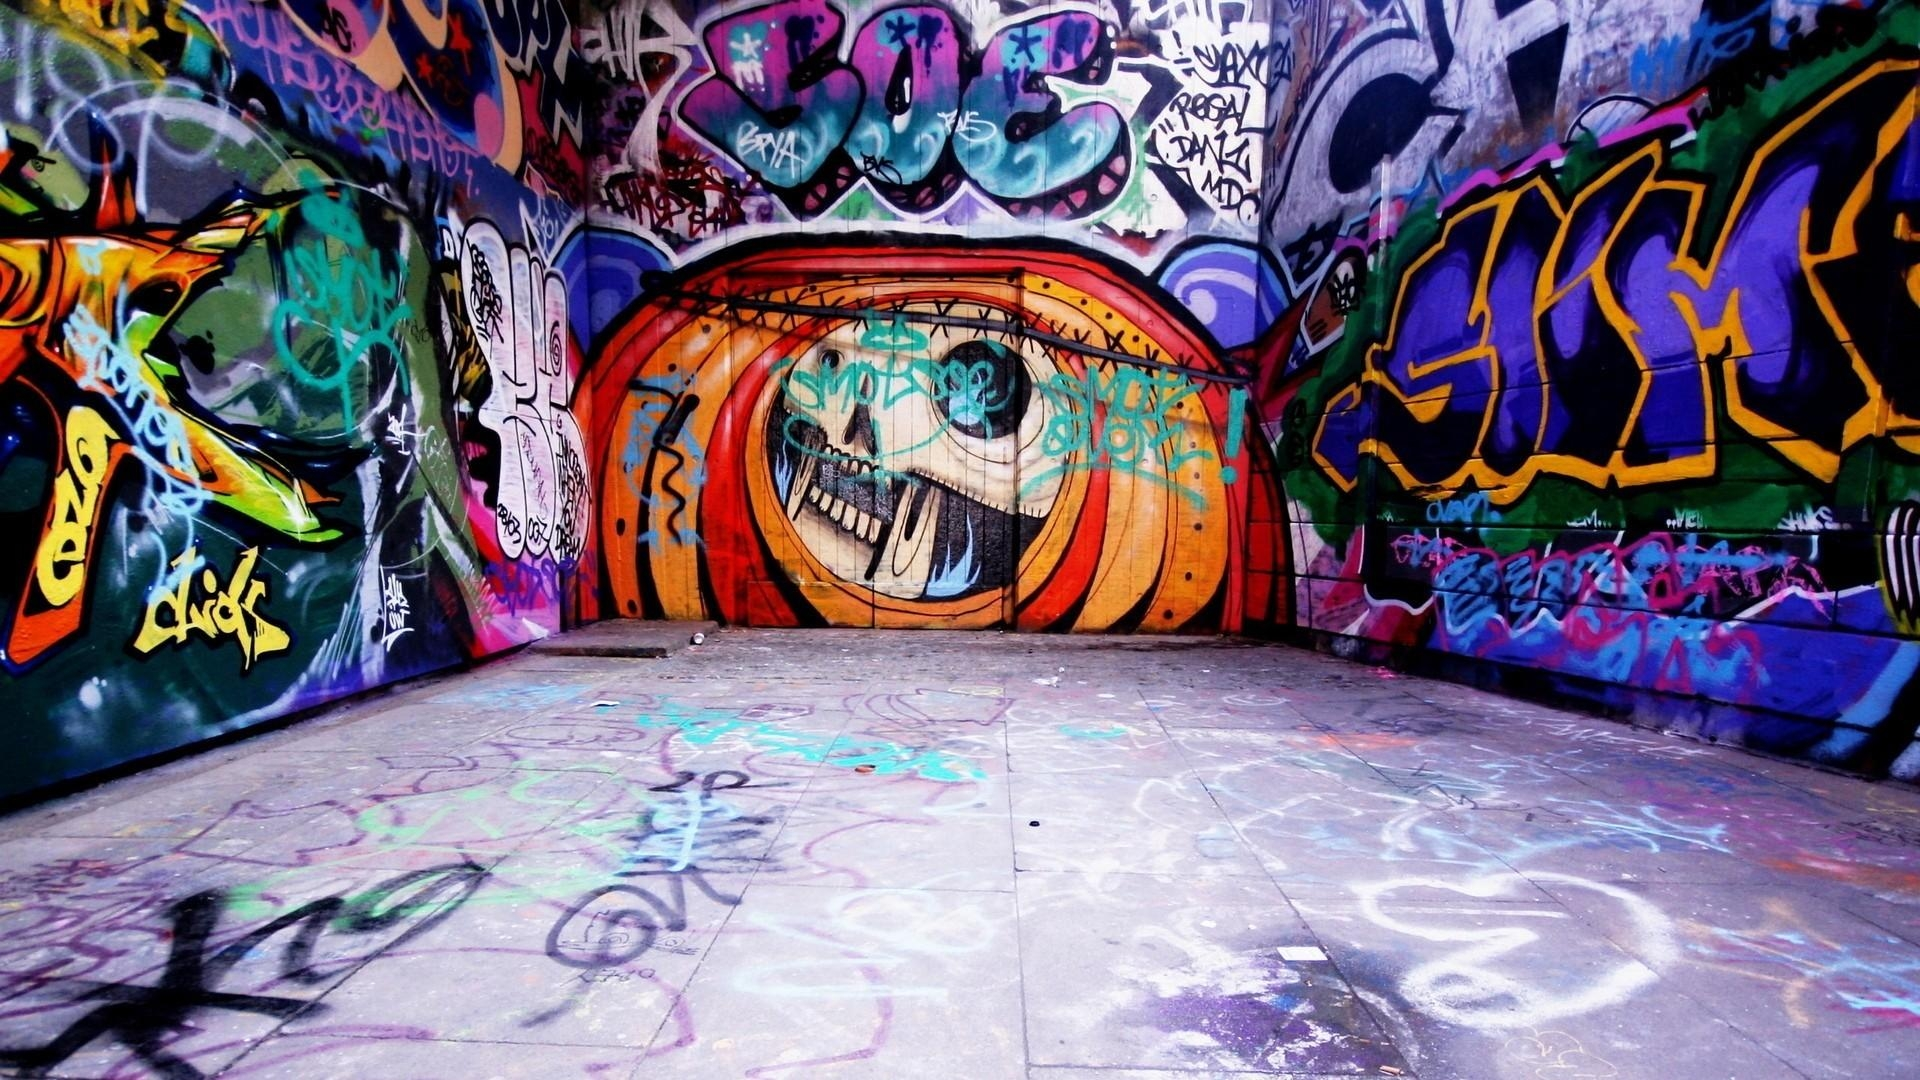 Wall Art Designs: Home Depot Wall Art Wall Paper Removable For Personalized Graffiti Wall Art (View 17 of 20)